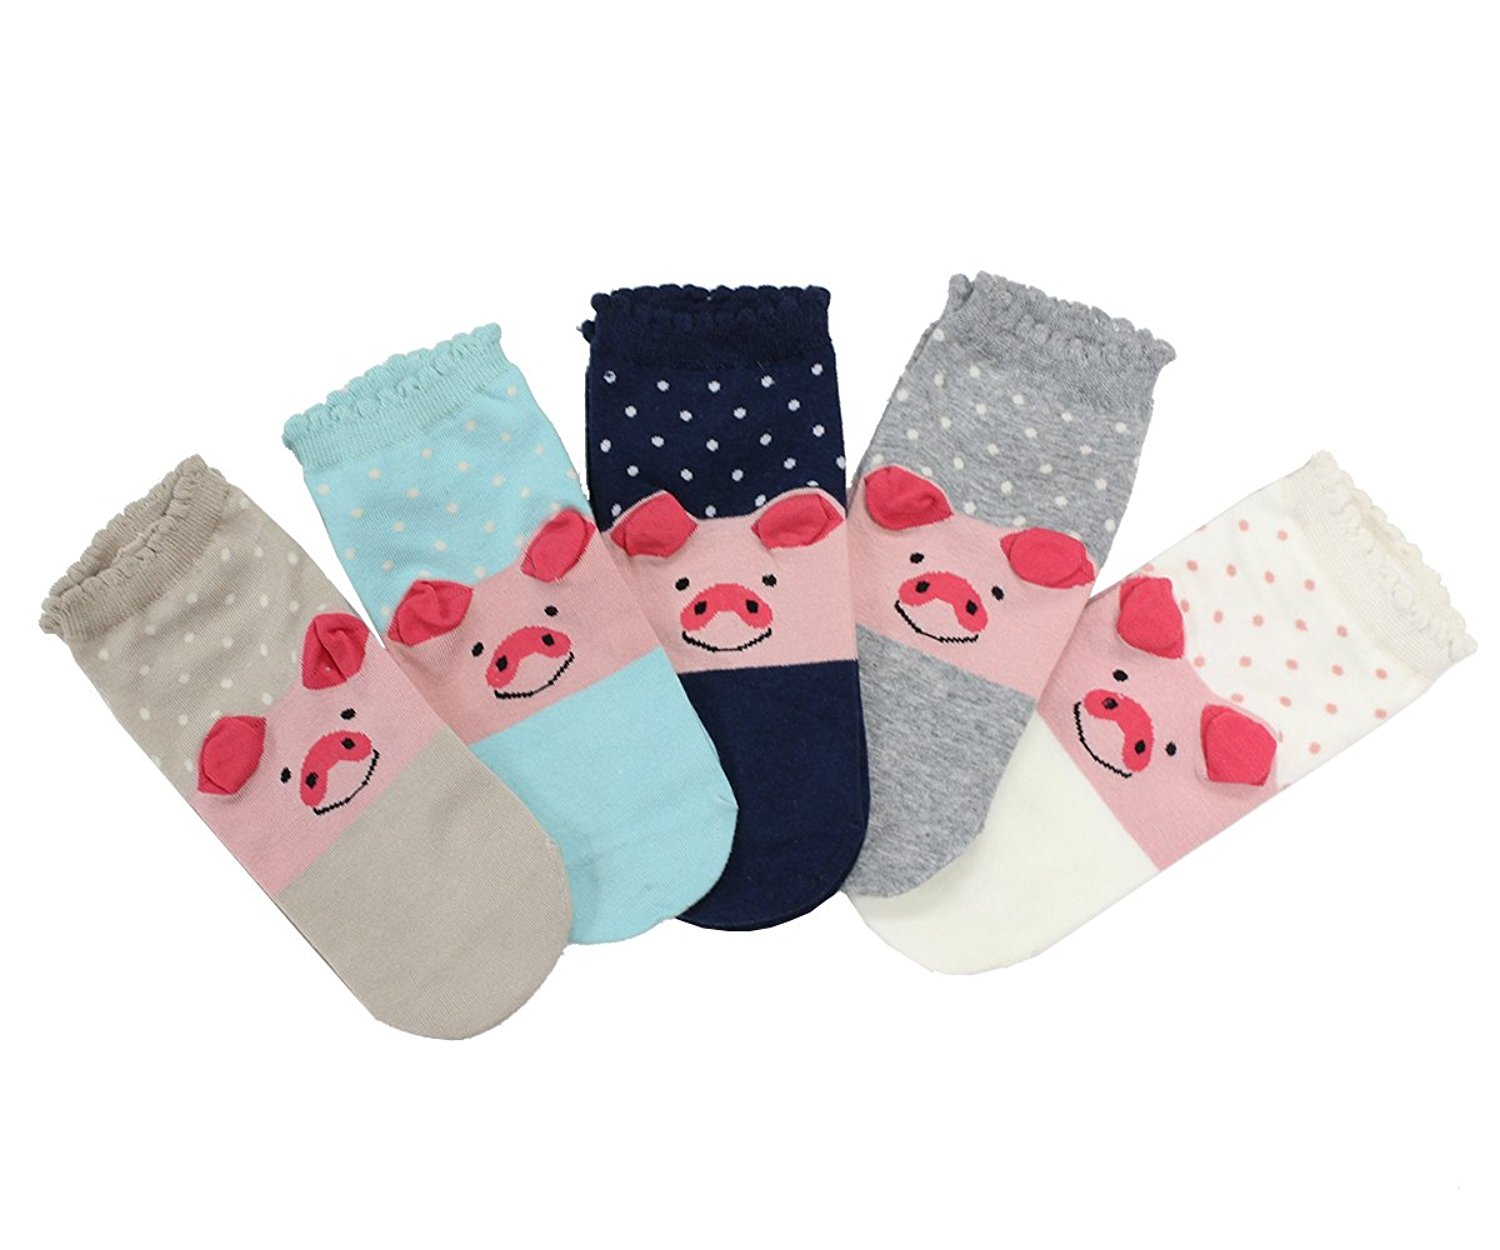 CozyWow WomensGirls Fun Crazy Low Cut PigElephantCat Socks (5 Pack)